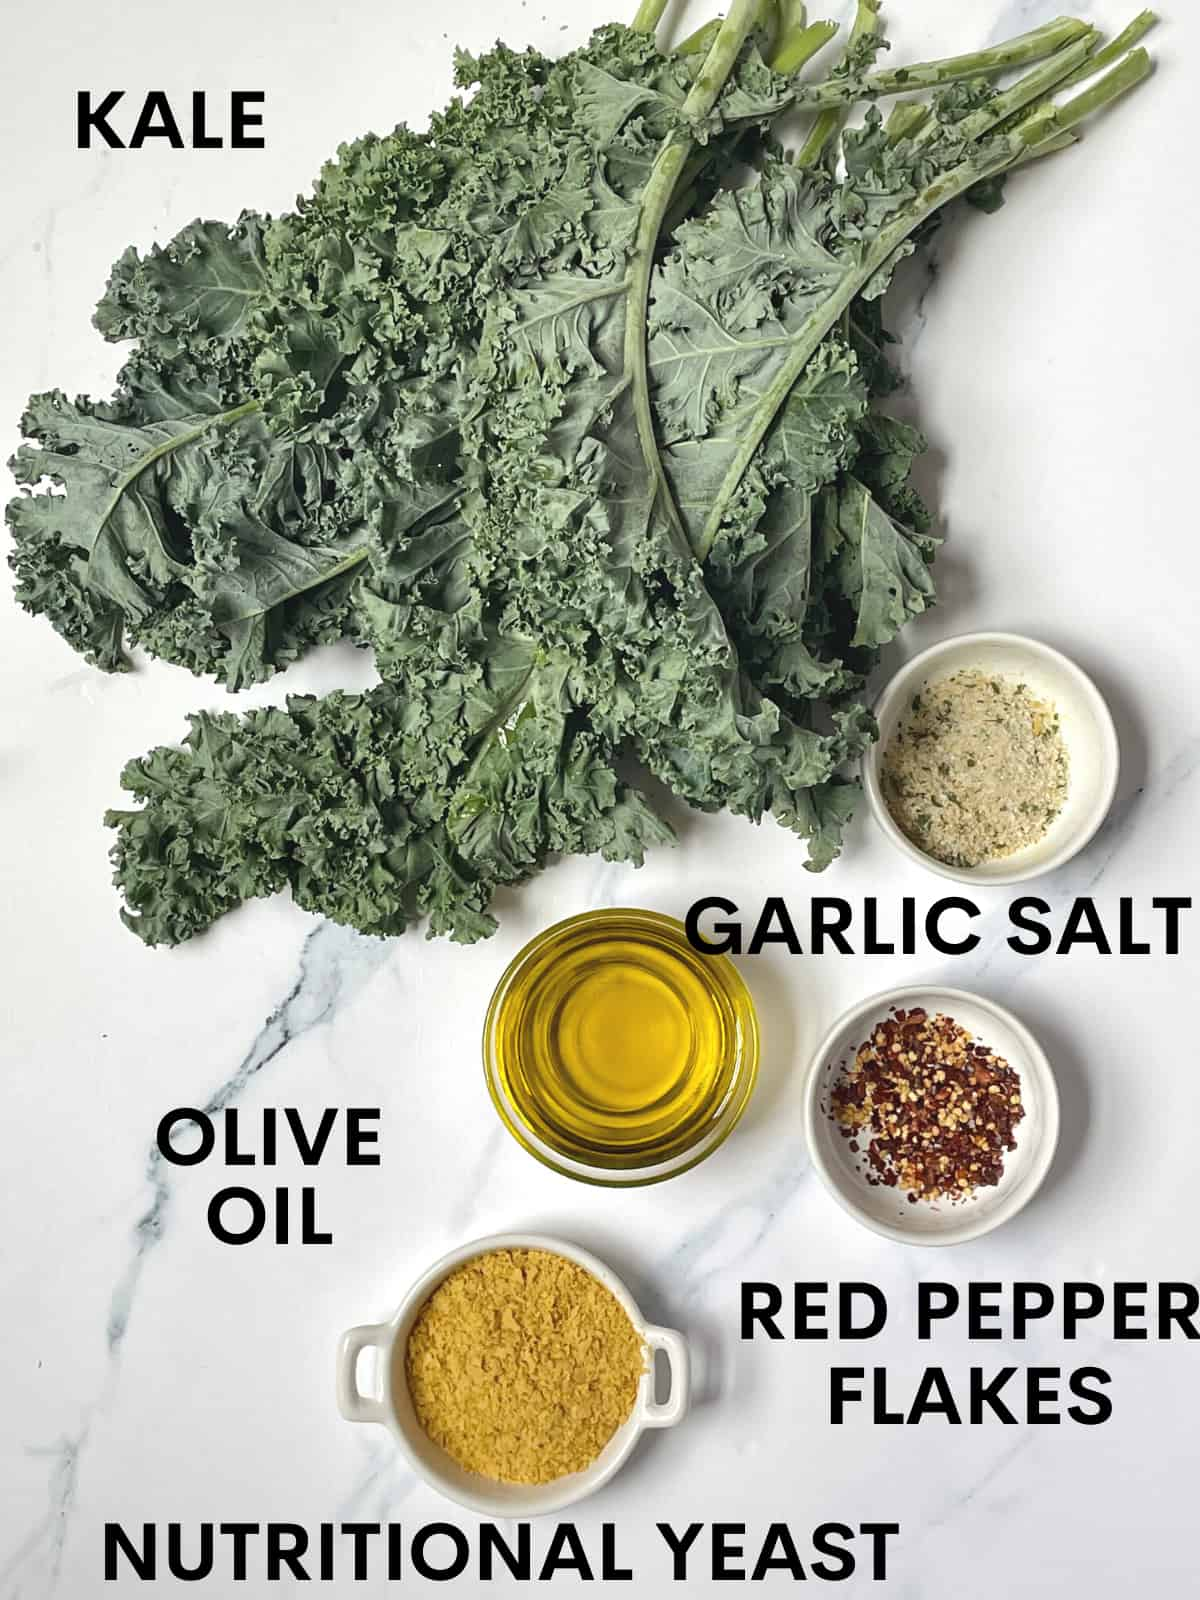 kale leaves, garlic salt, red pepper flakes, olive oil and nutritional yeast on a white cutting board